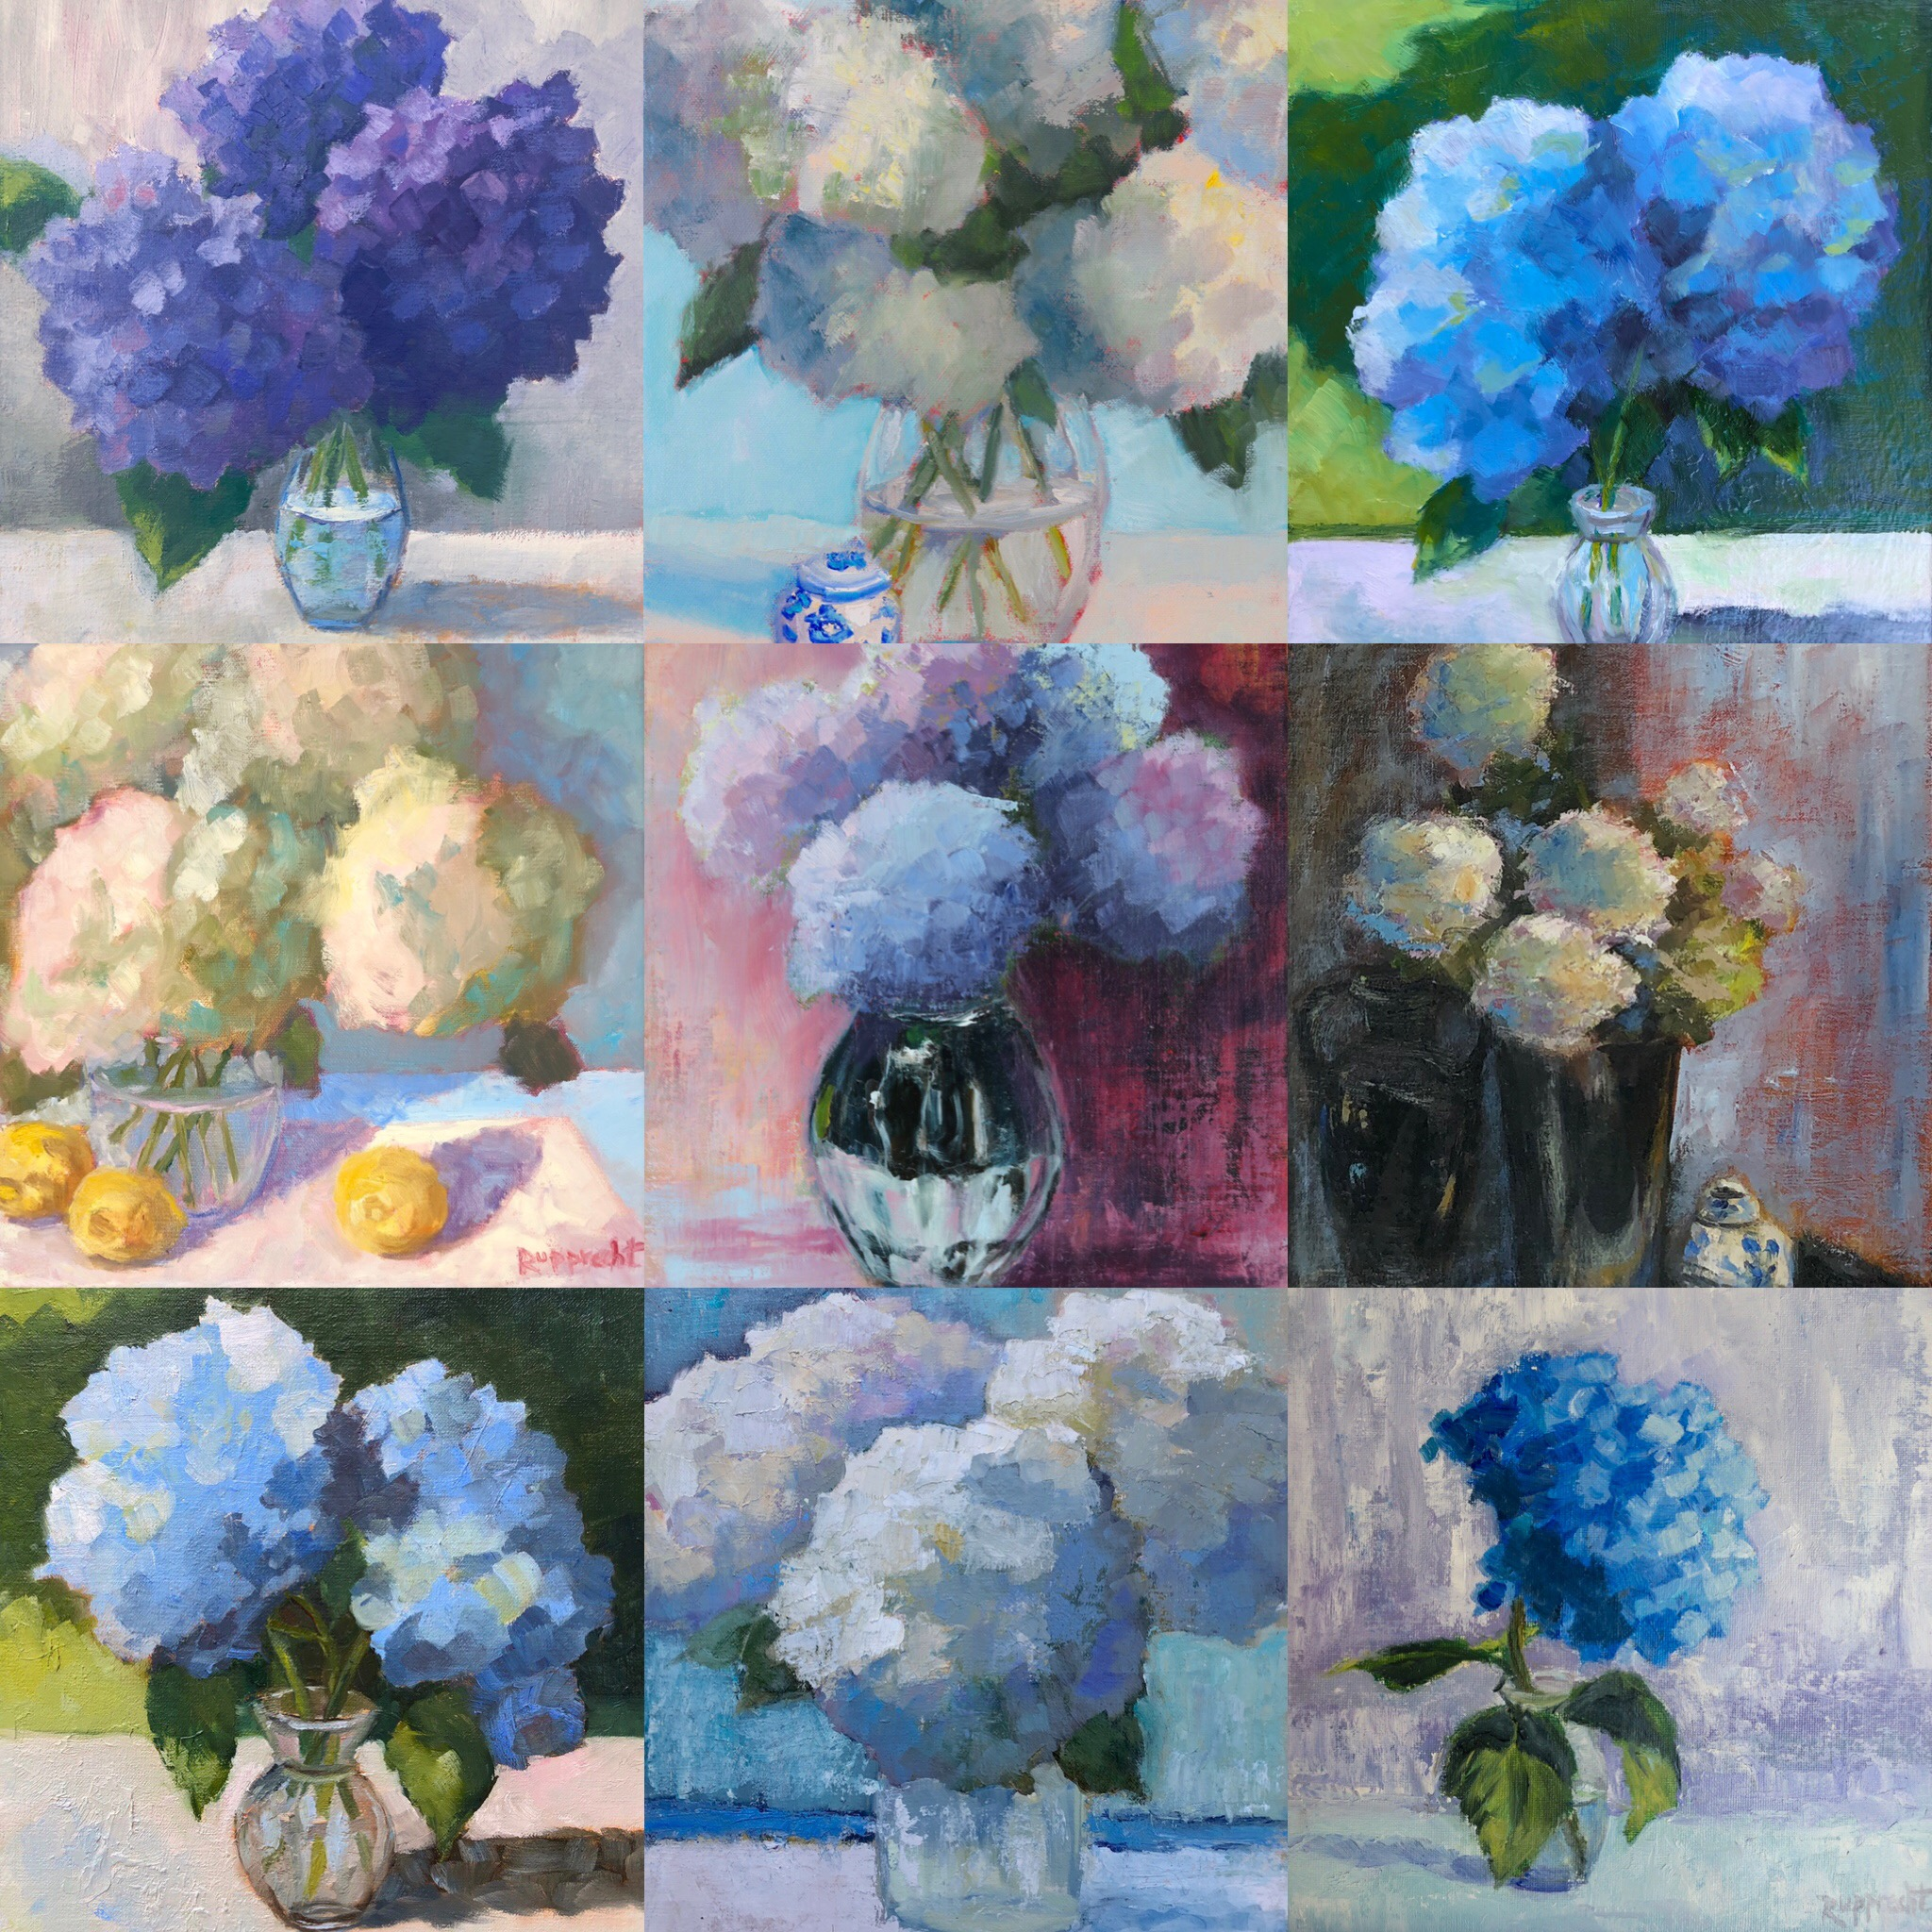 Examples of past hydrangea paintings by Jean Rupprecht